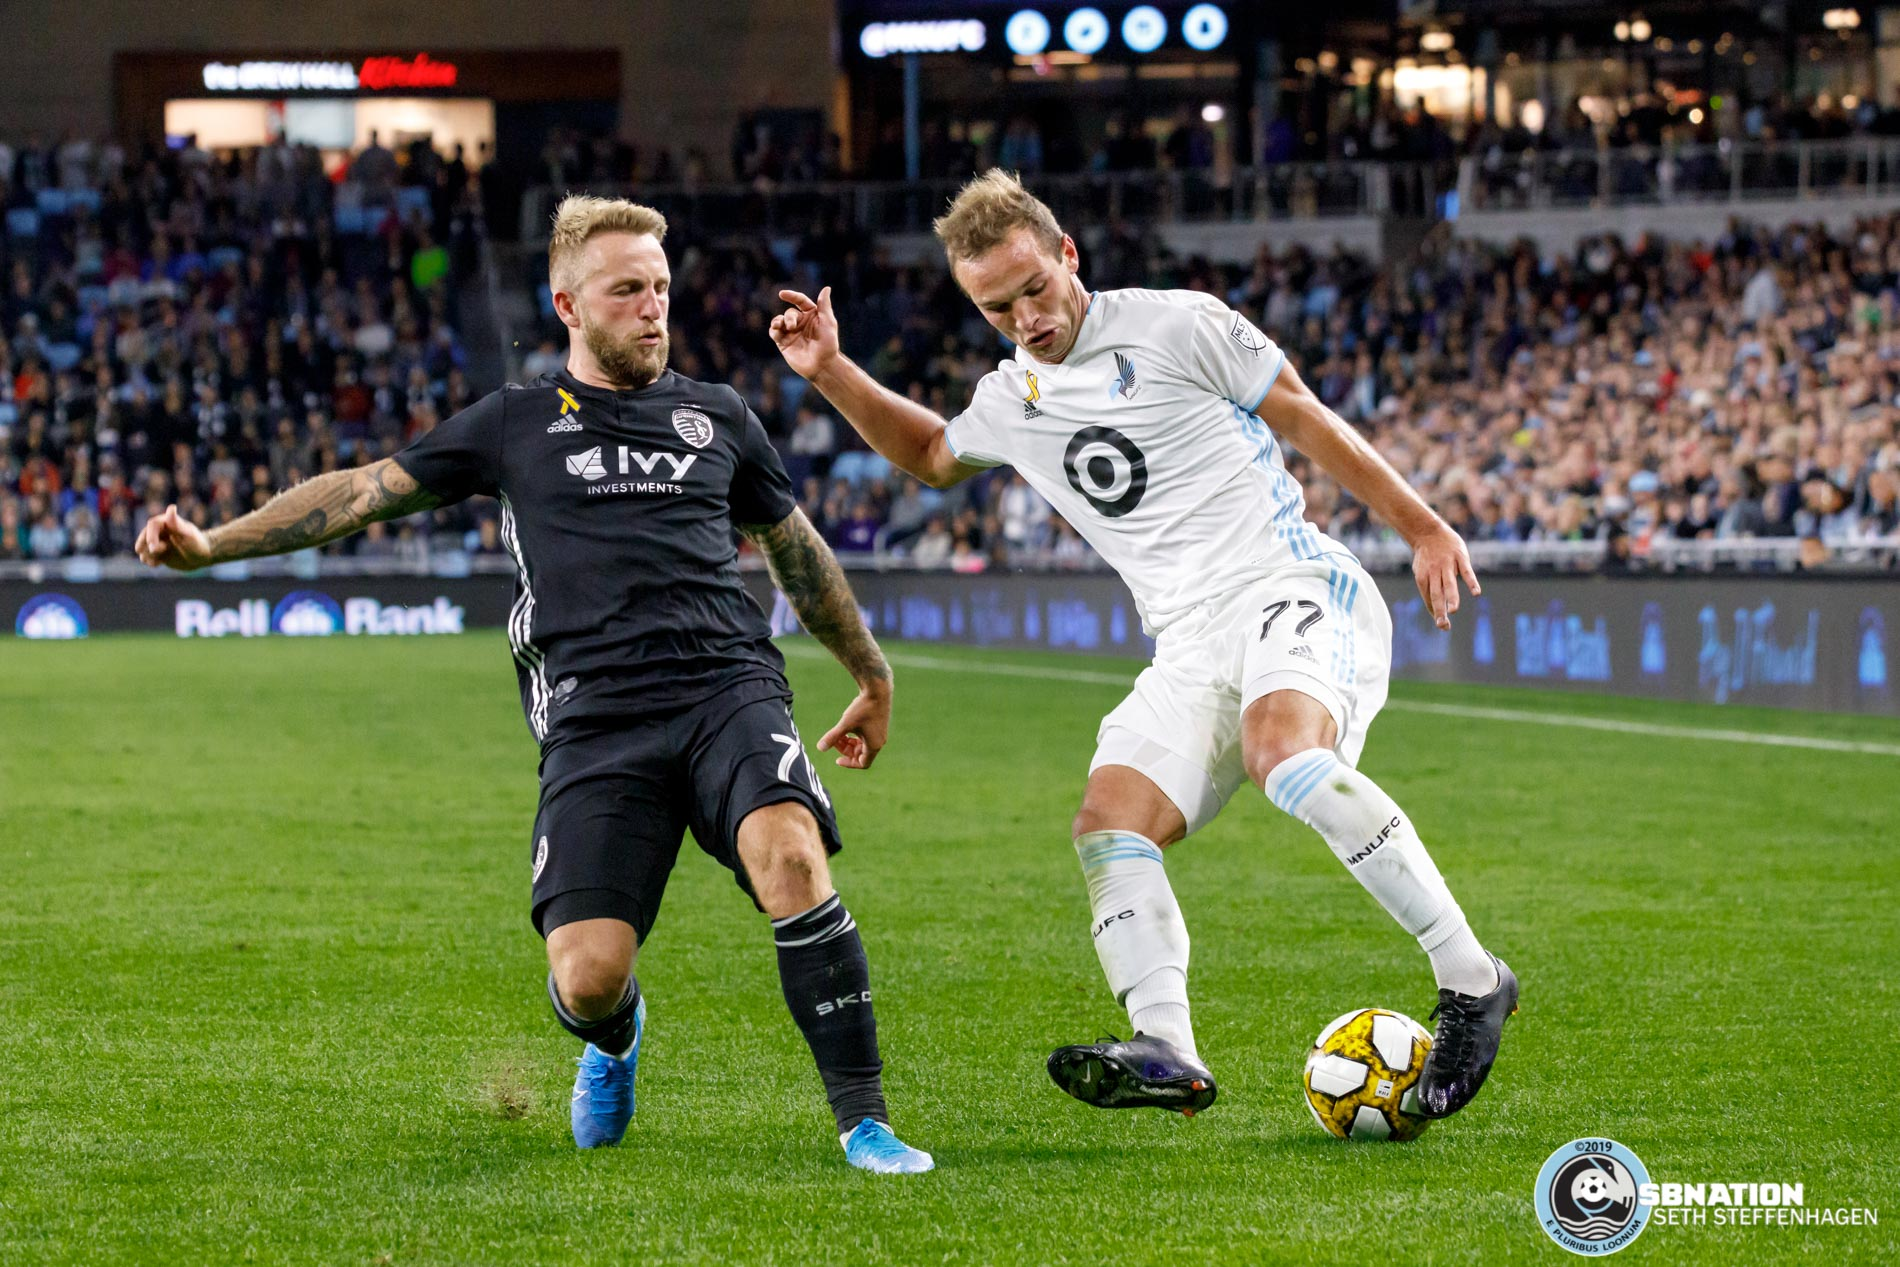 September 25, 2019 - Saint Paul, Minnesota, United States - Minnesota United defender Chase Gasper (77) dribbles the ball by Sporting KC forward Johnny Russell (7) during a match at Allianz Field.